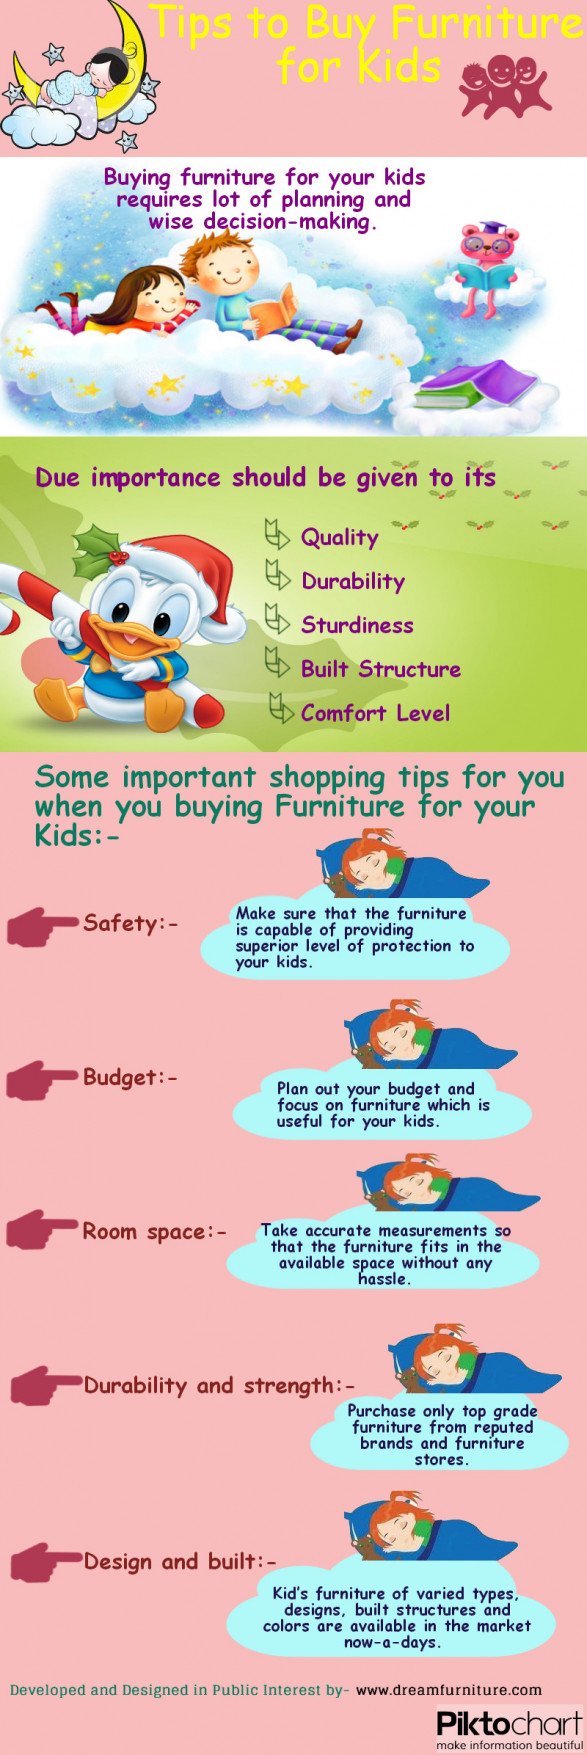 Tips to buy Furniture for your Kids